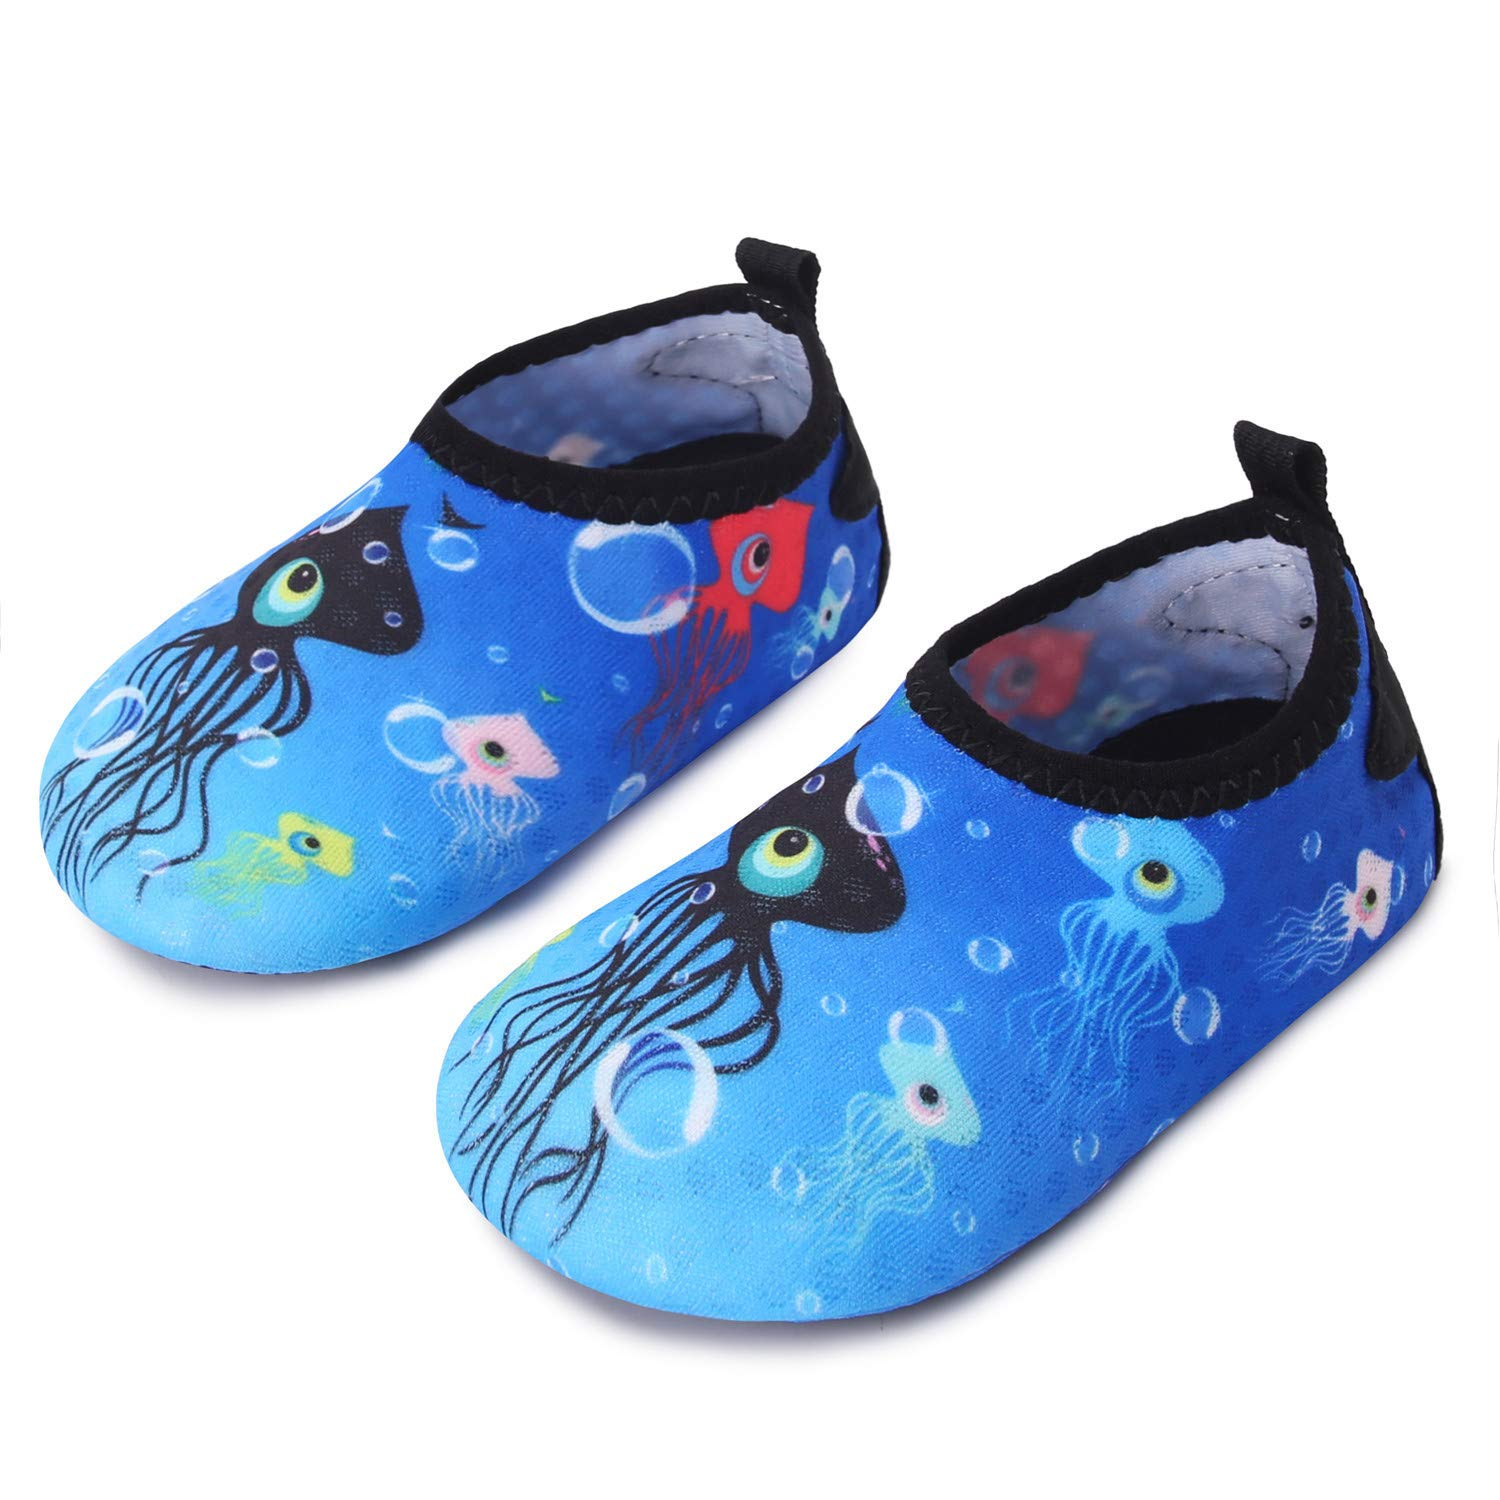 bedd3053ede2 Galleon - JIASUQI Outdoor Sports Swim Sand Aqua Water Shoes For Baby Boys  Girls Blue Octopus 12-18 Months